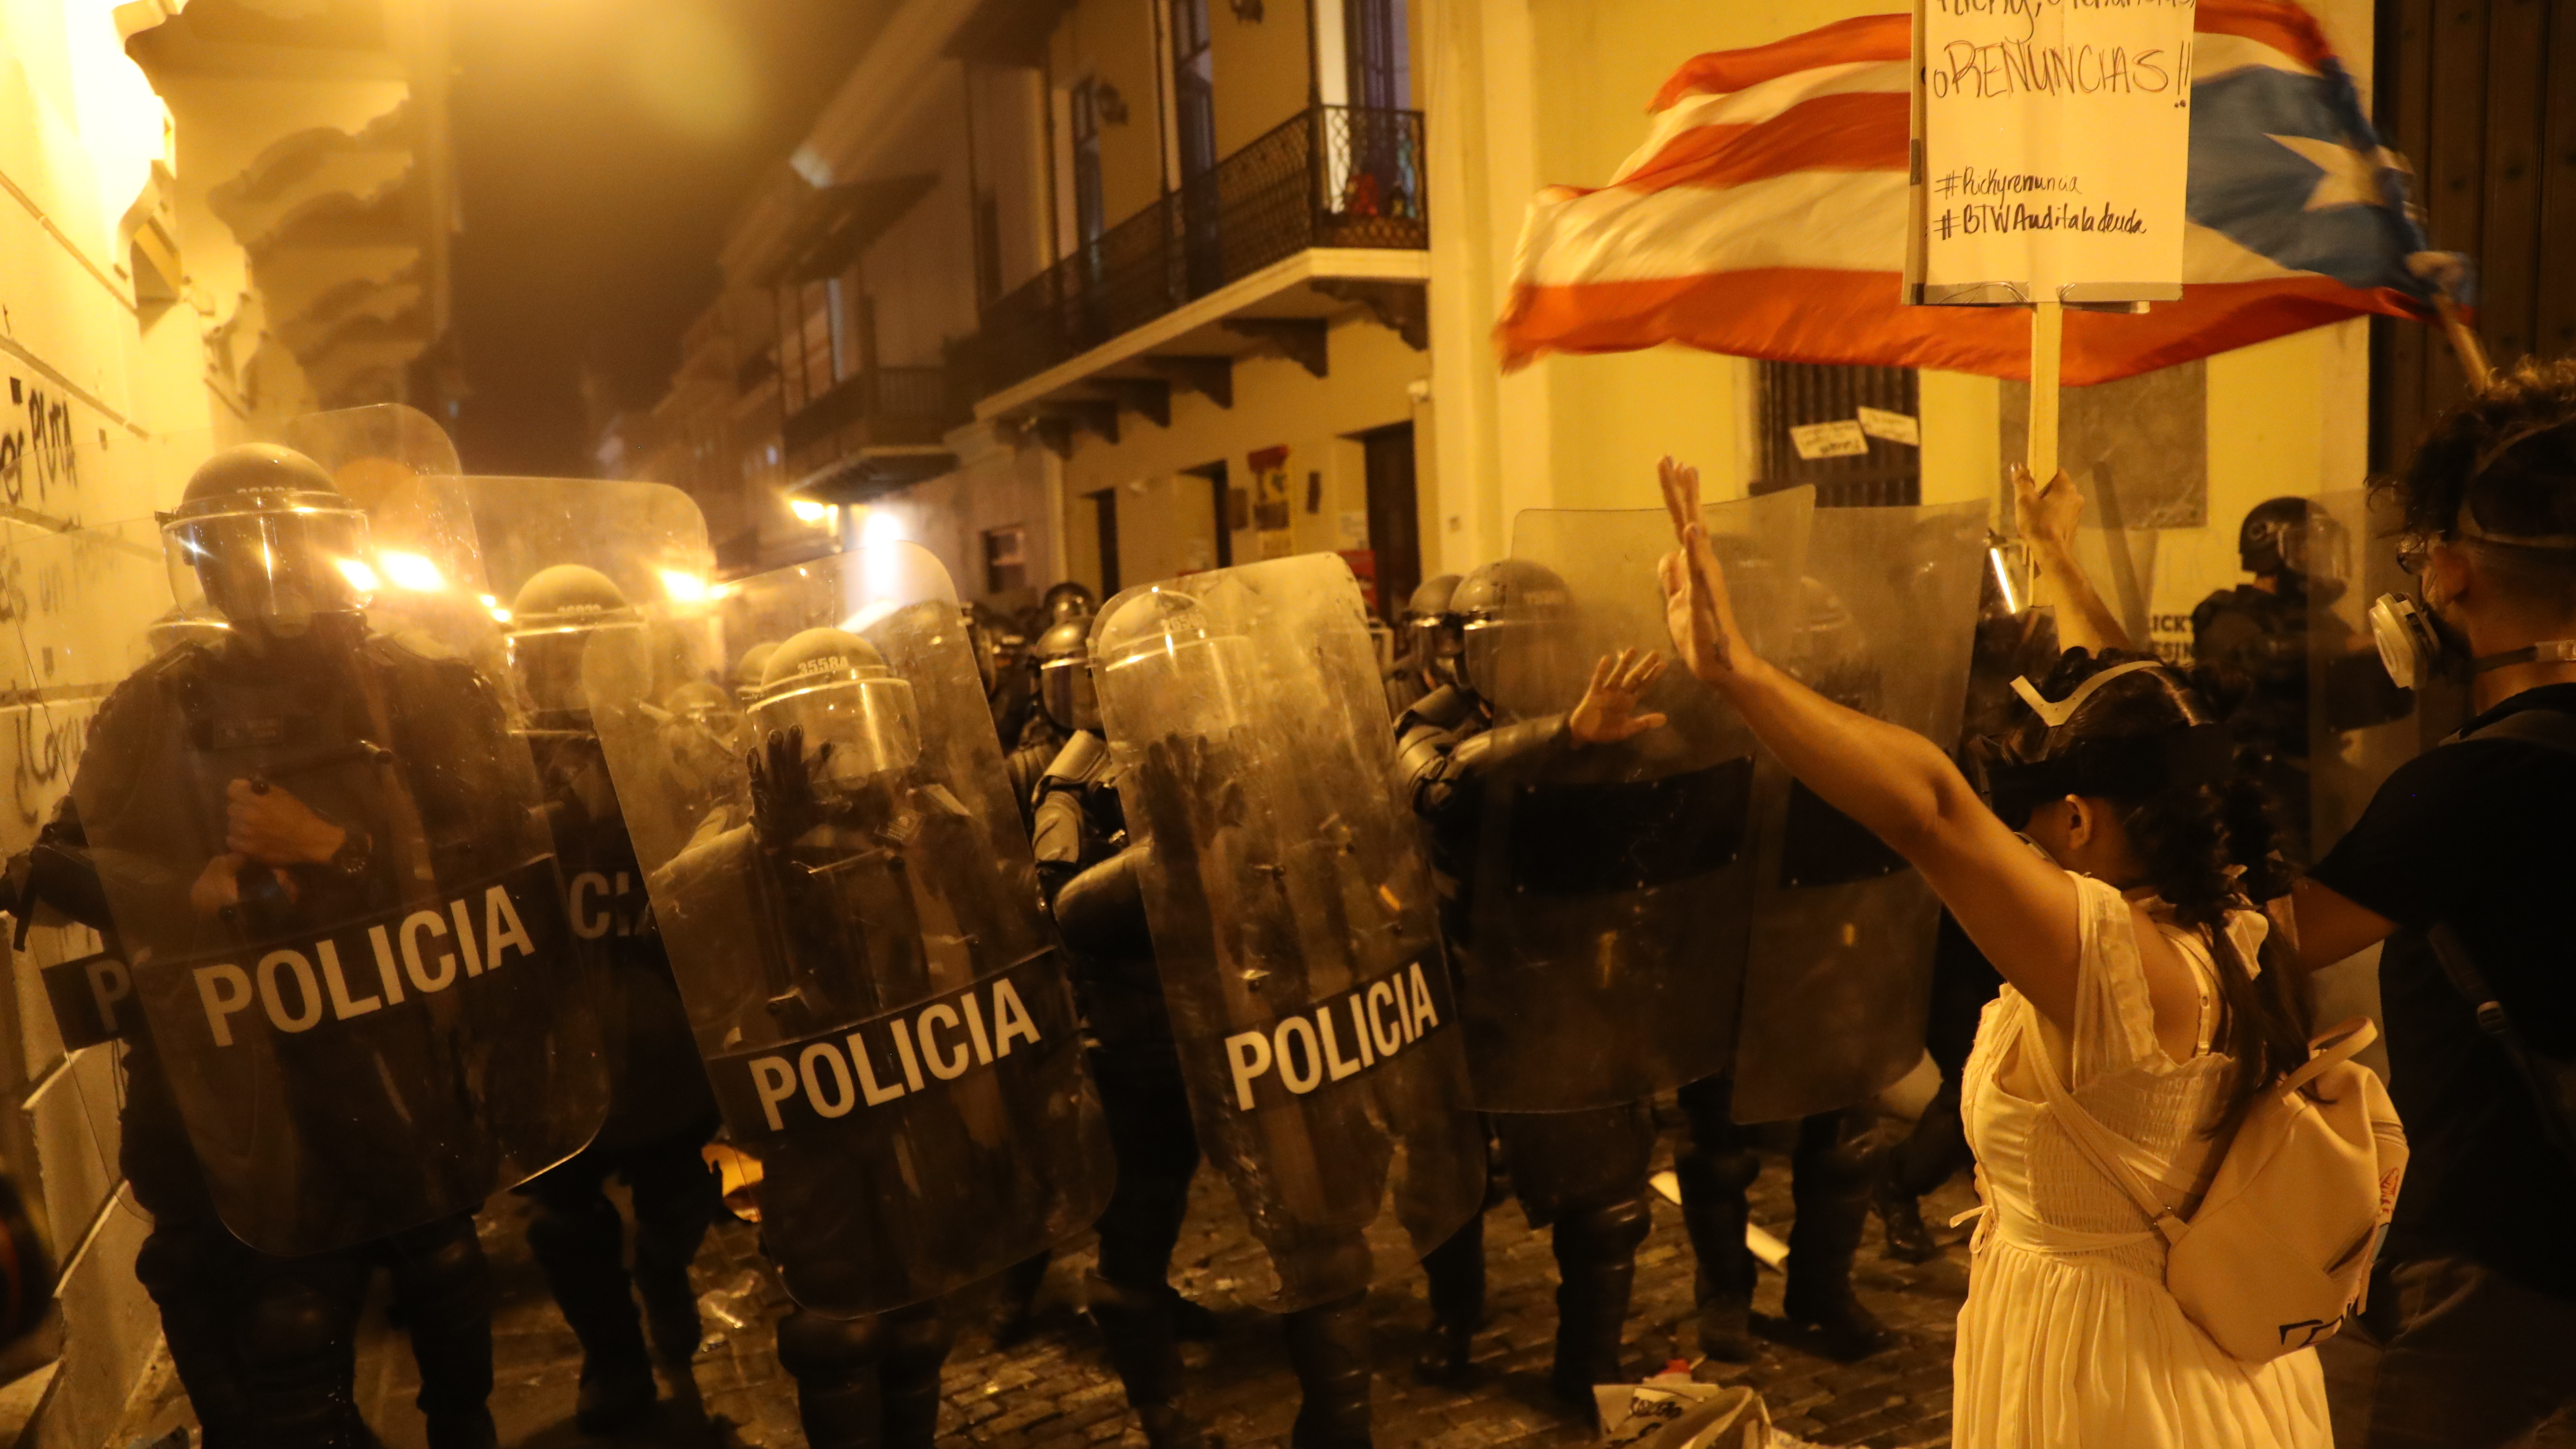 Streets A 'War Zone' As Protesters Call For Puerto Rico's Governor To Resign